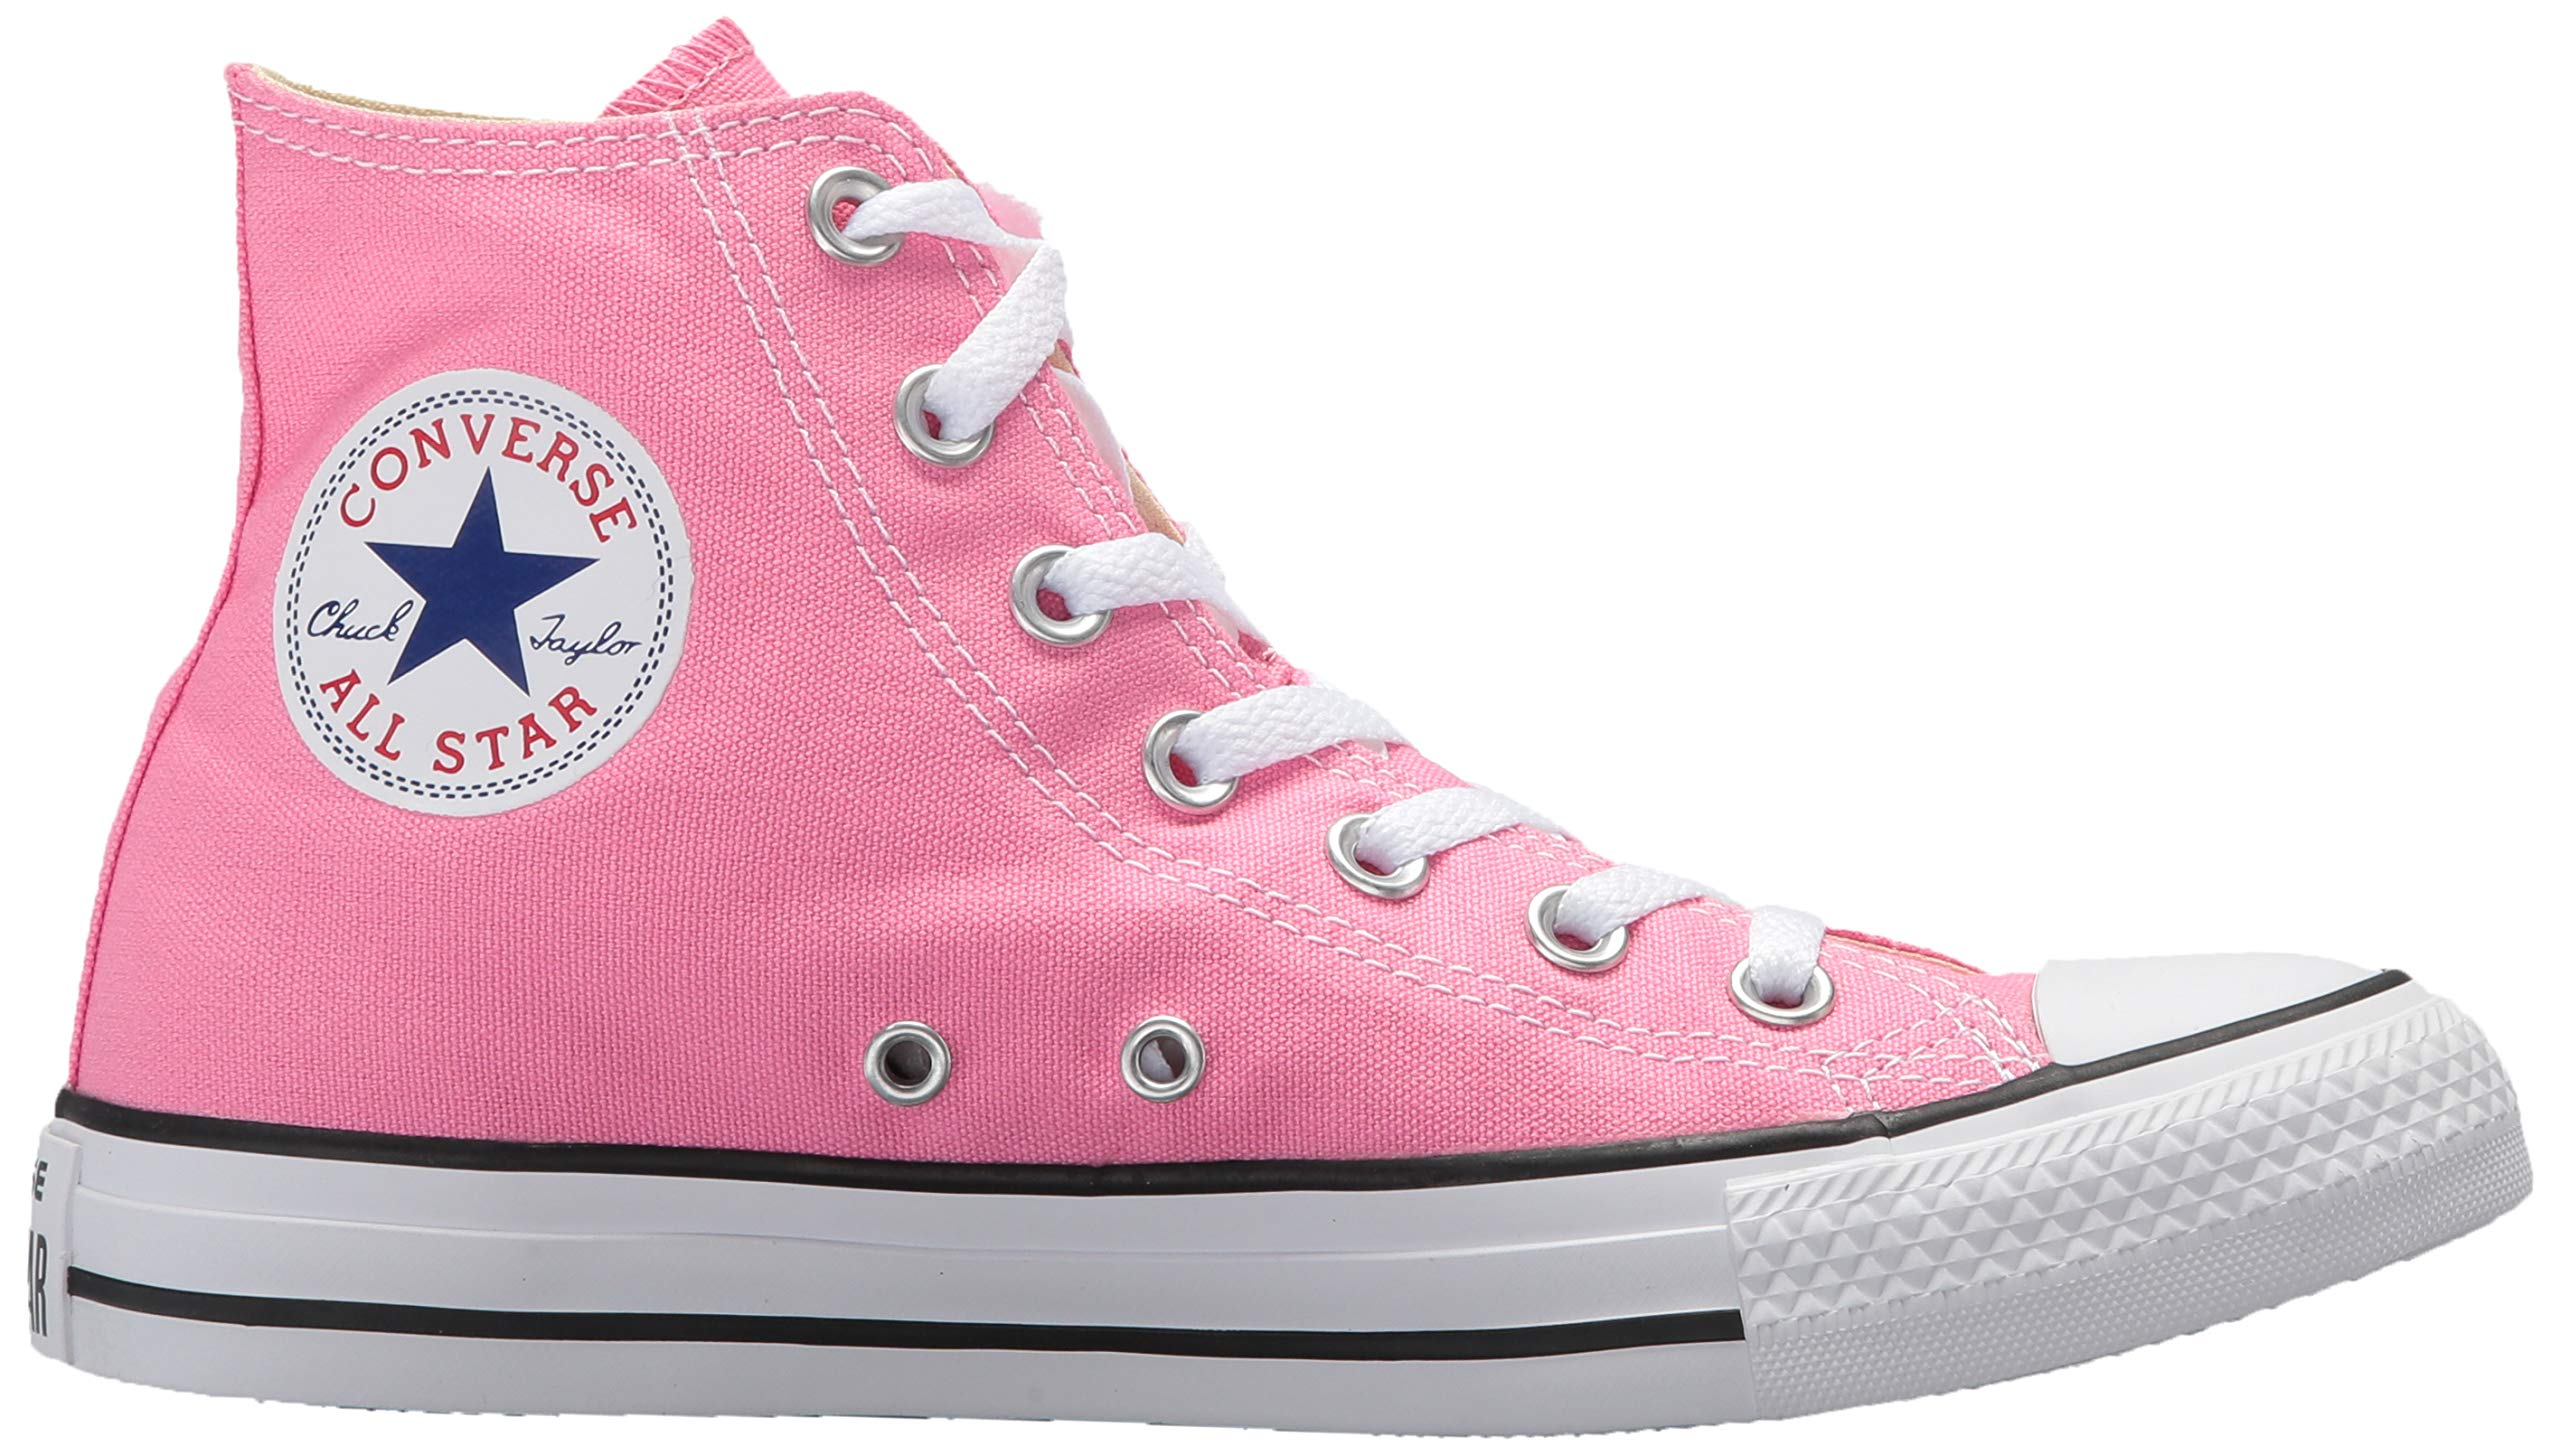 Chuck Taylor All Star Canvas High Top, Pink, 4 M US by Converse (Image #8)